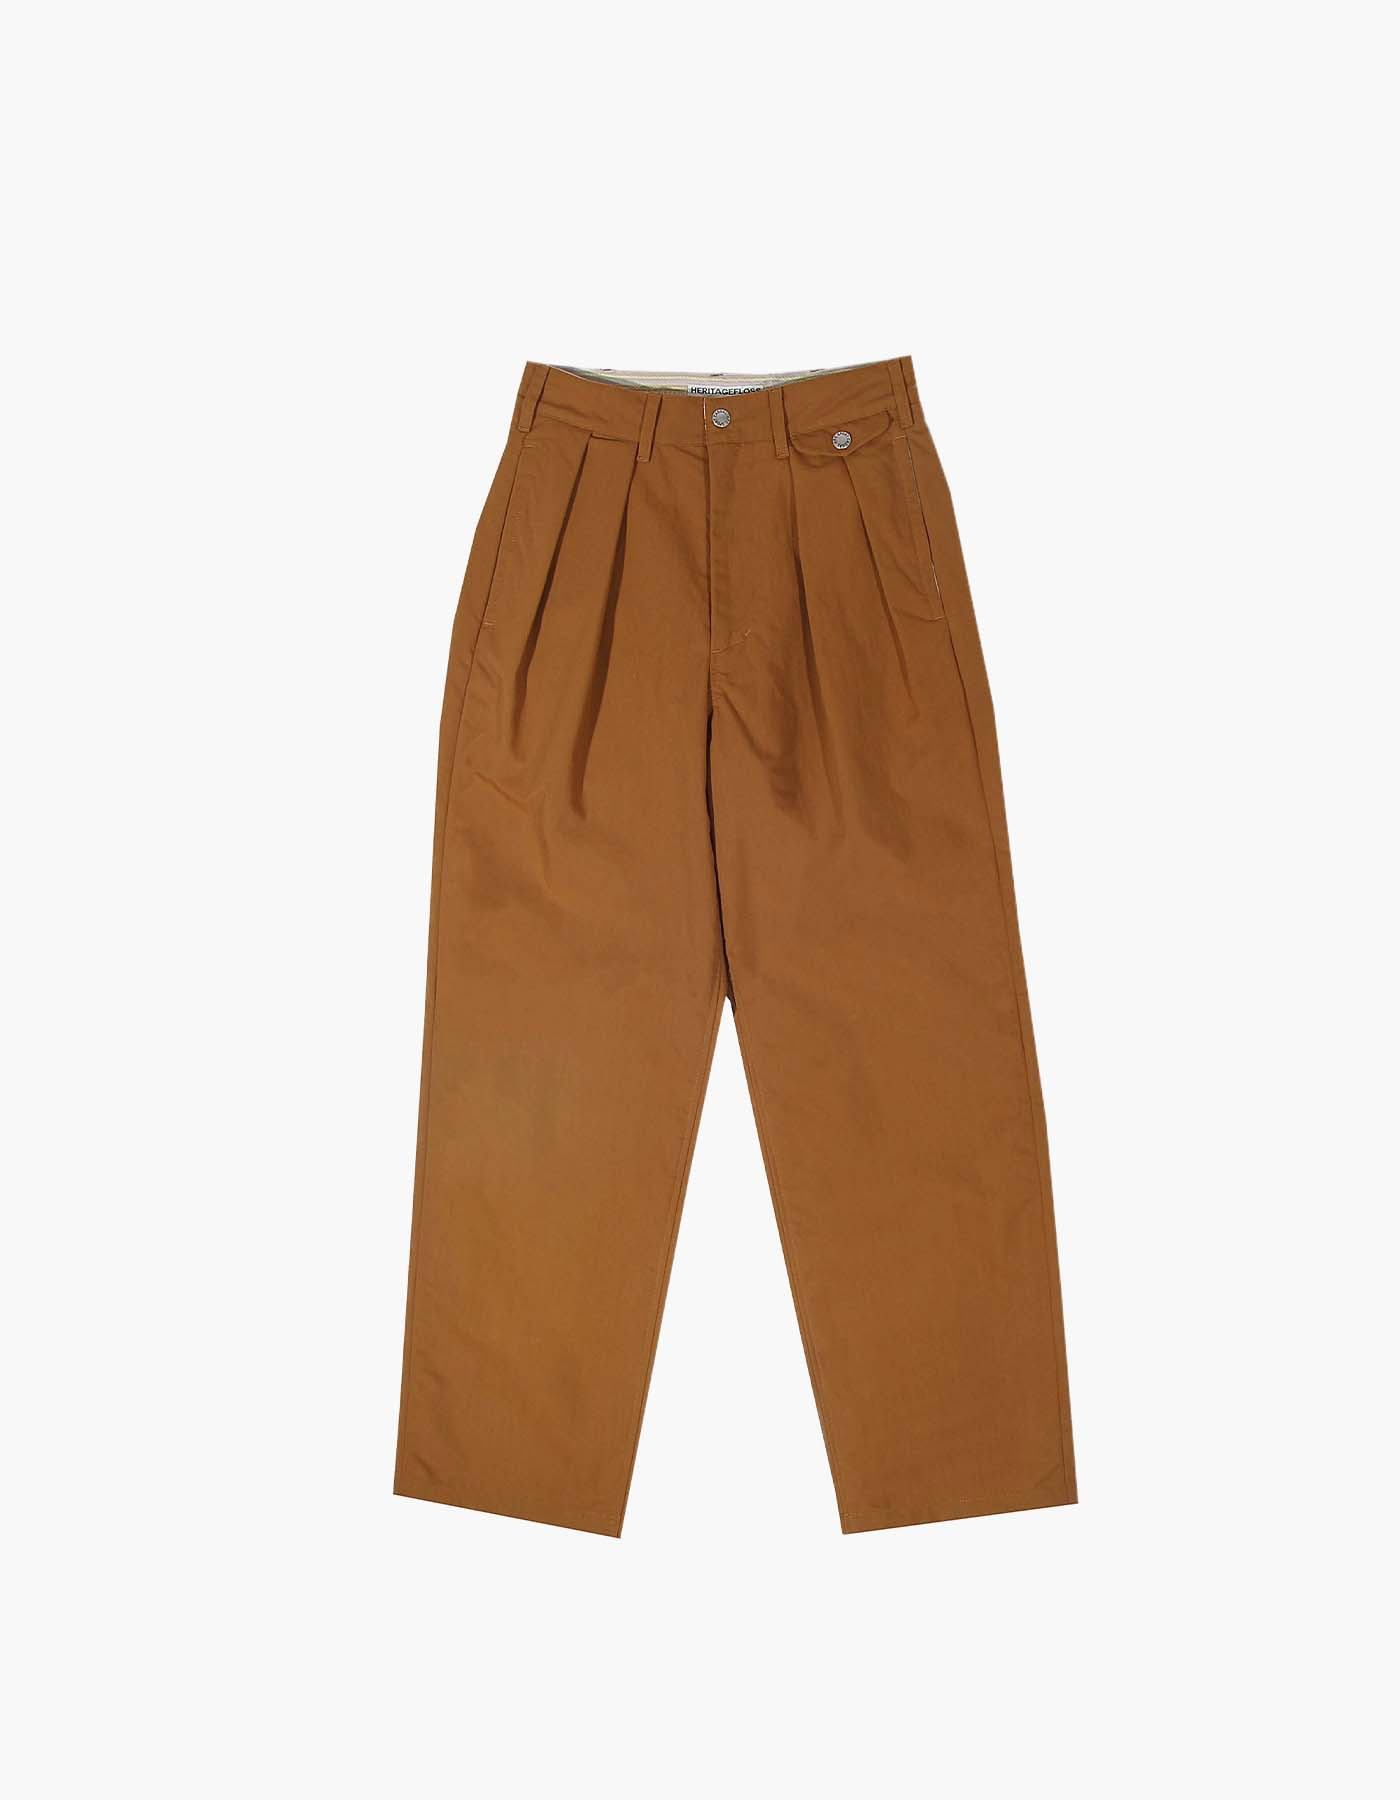 QUICK-DRYING NYLON CHINO PANTS (W) / CAMEL